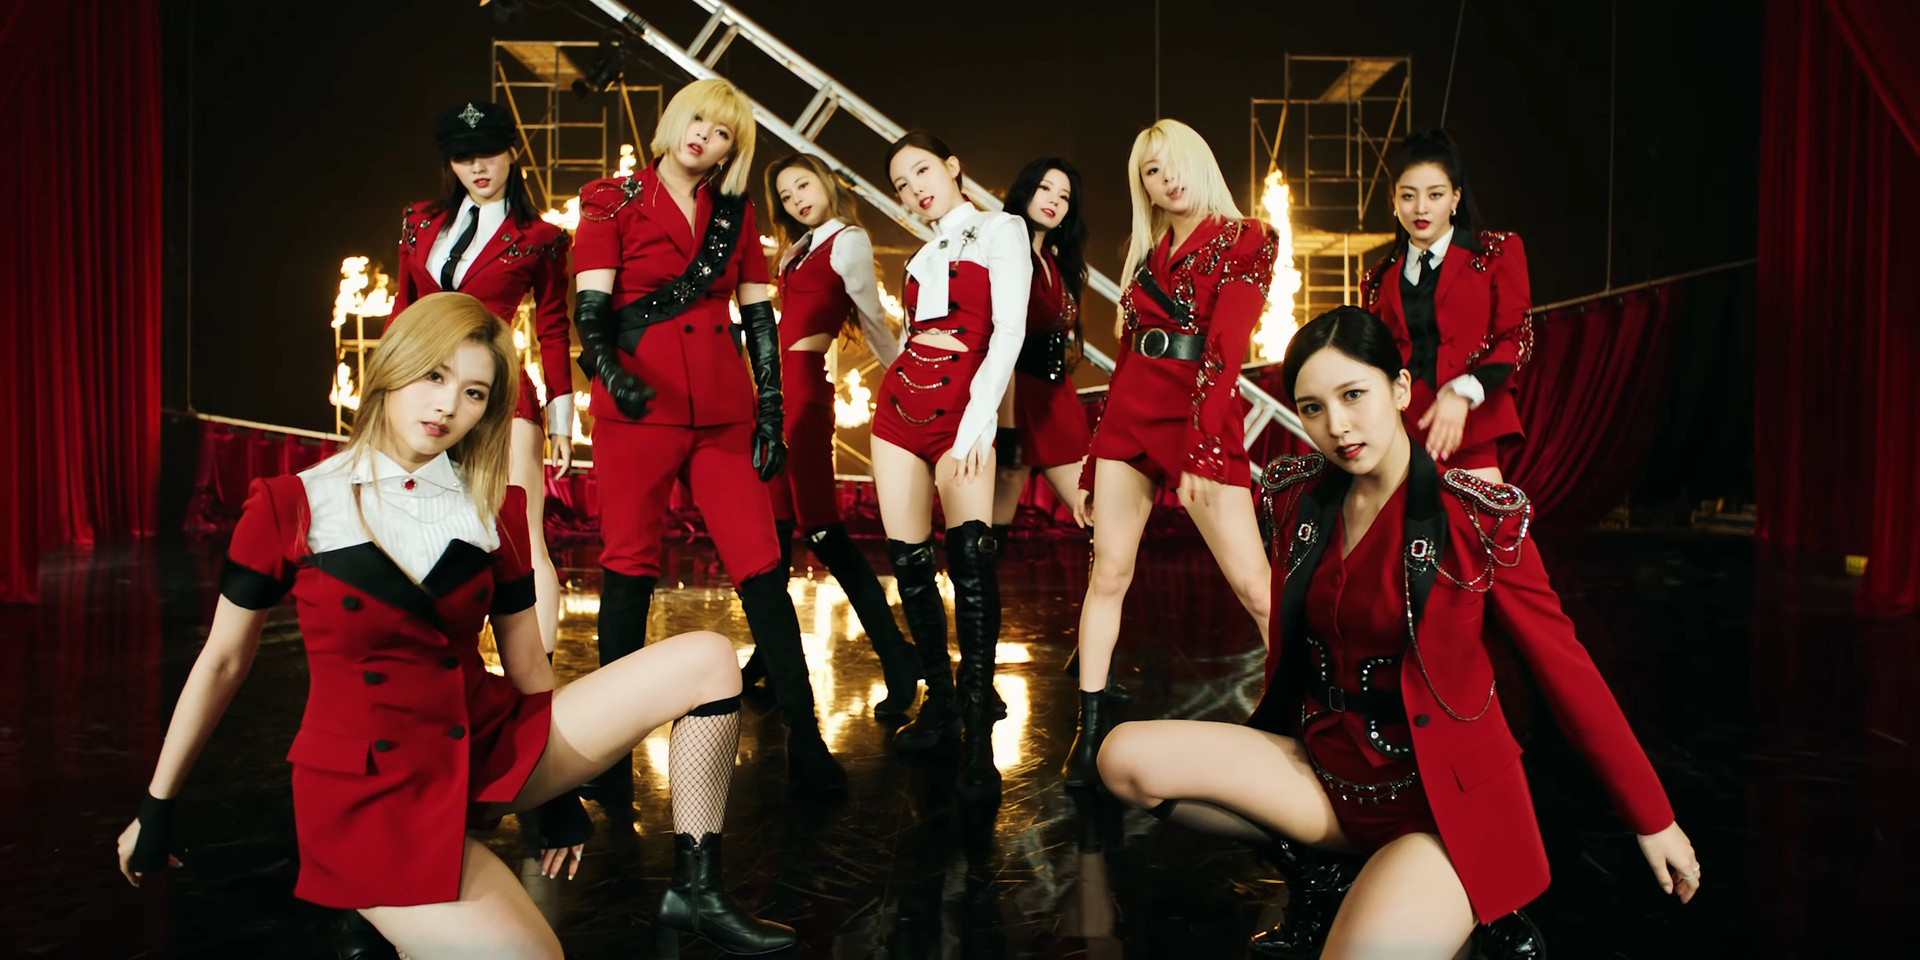 Dive into a 'Perfect World' with TWICE in new Japanese album – listen